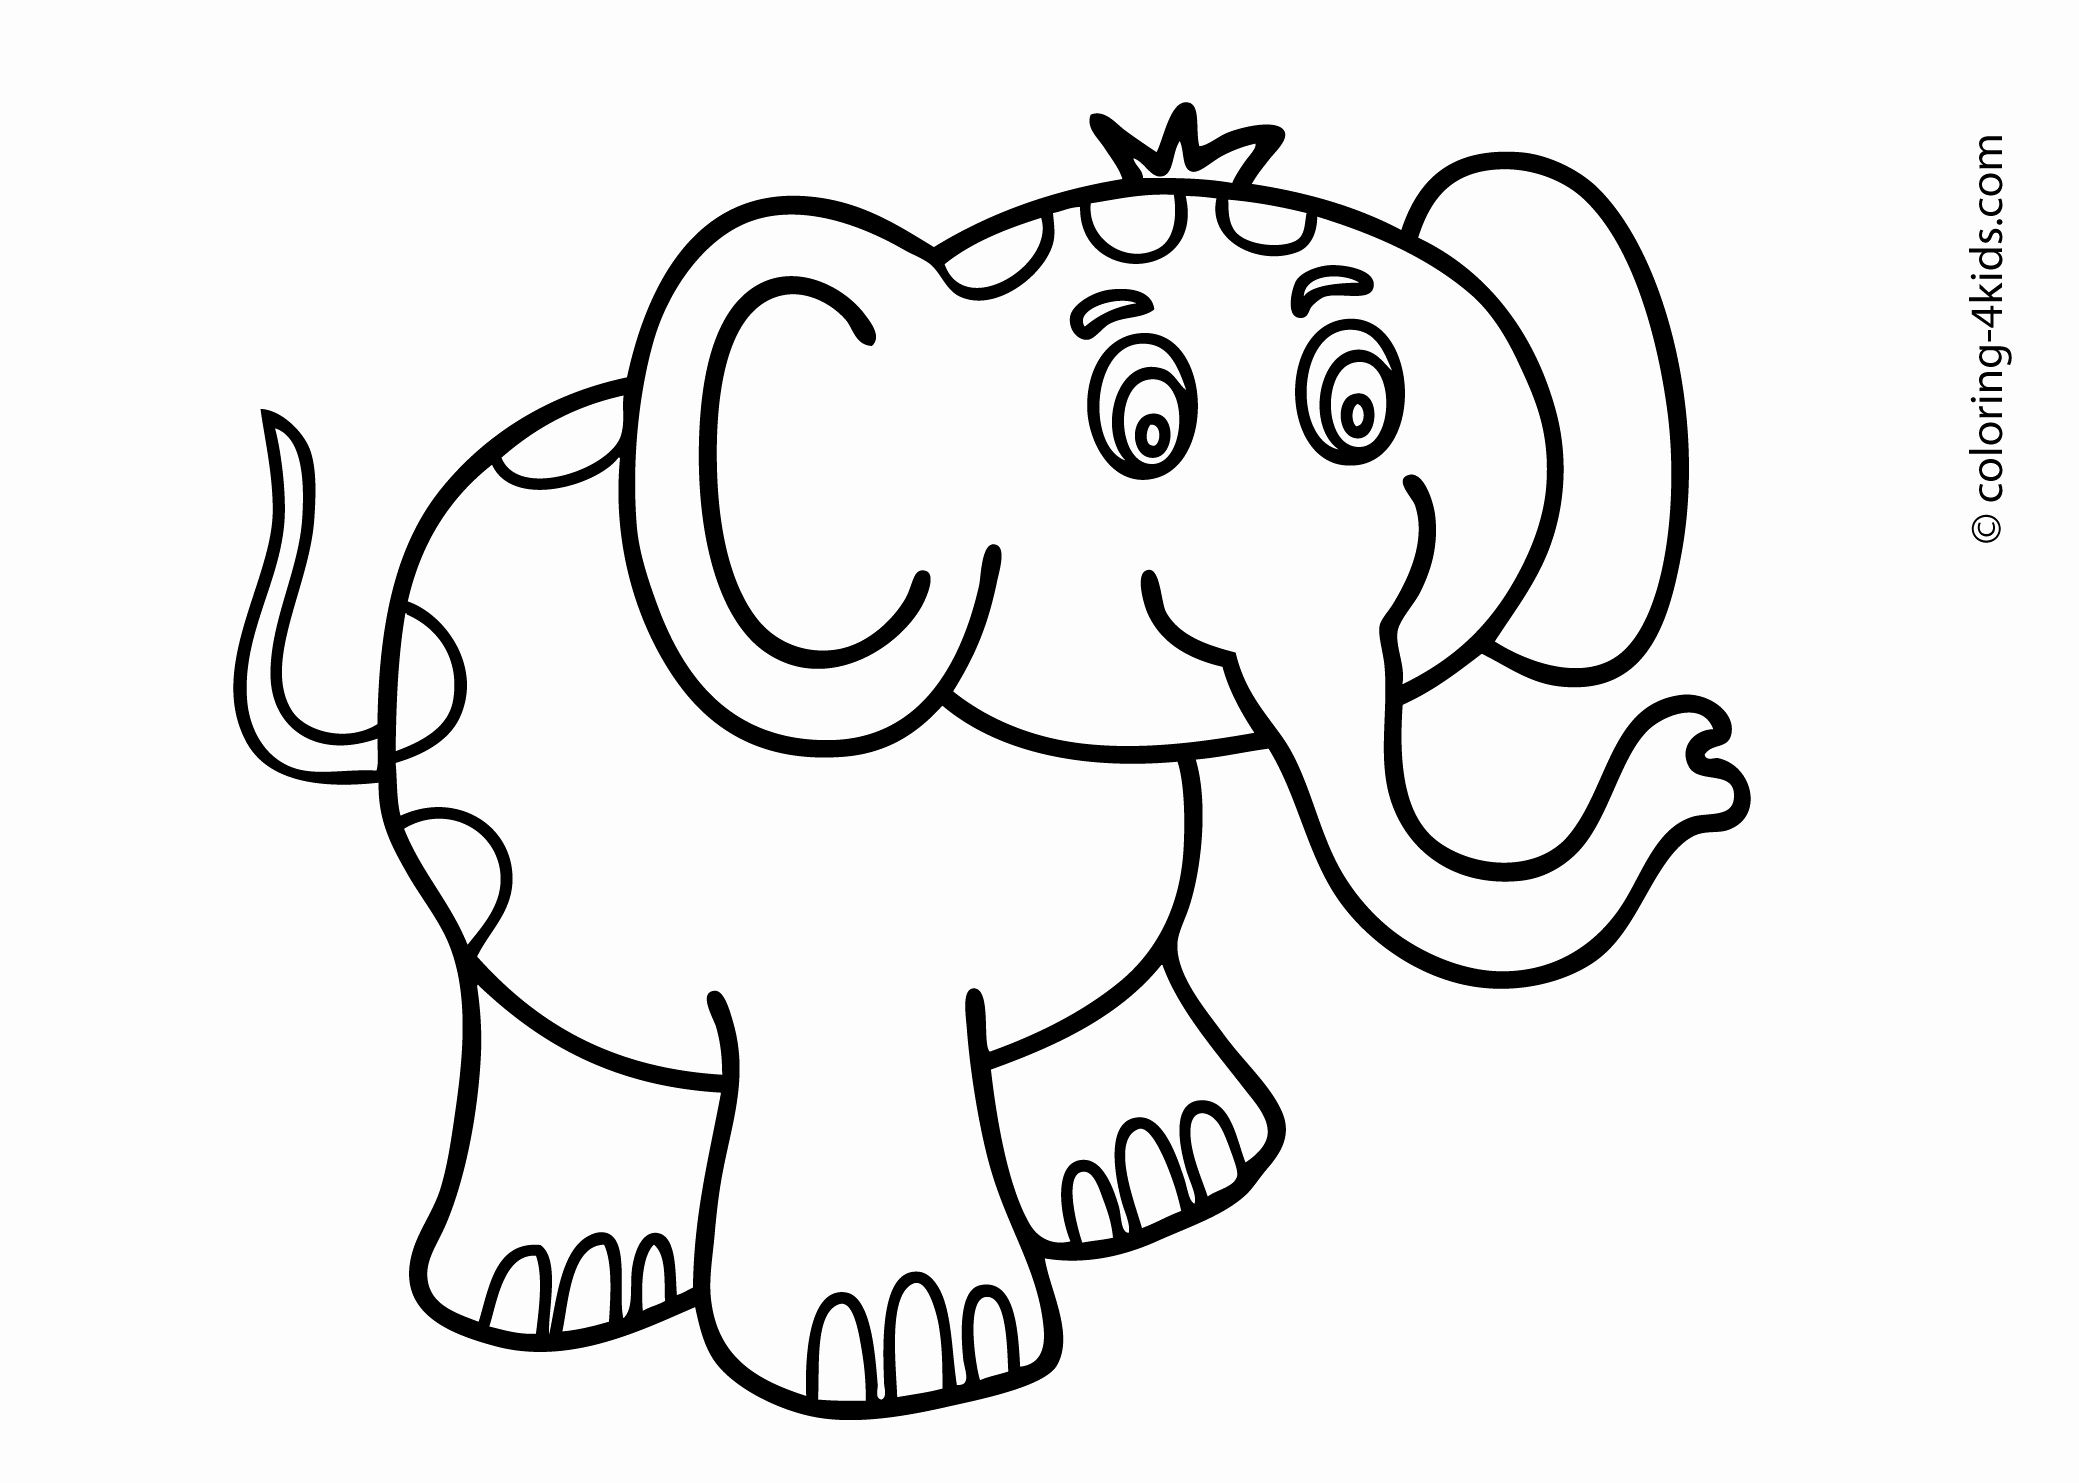 Drawing Book For Children Free Download In 2020 Animal Coloring